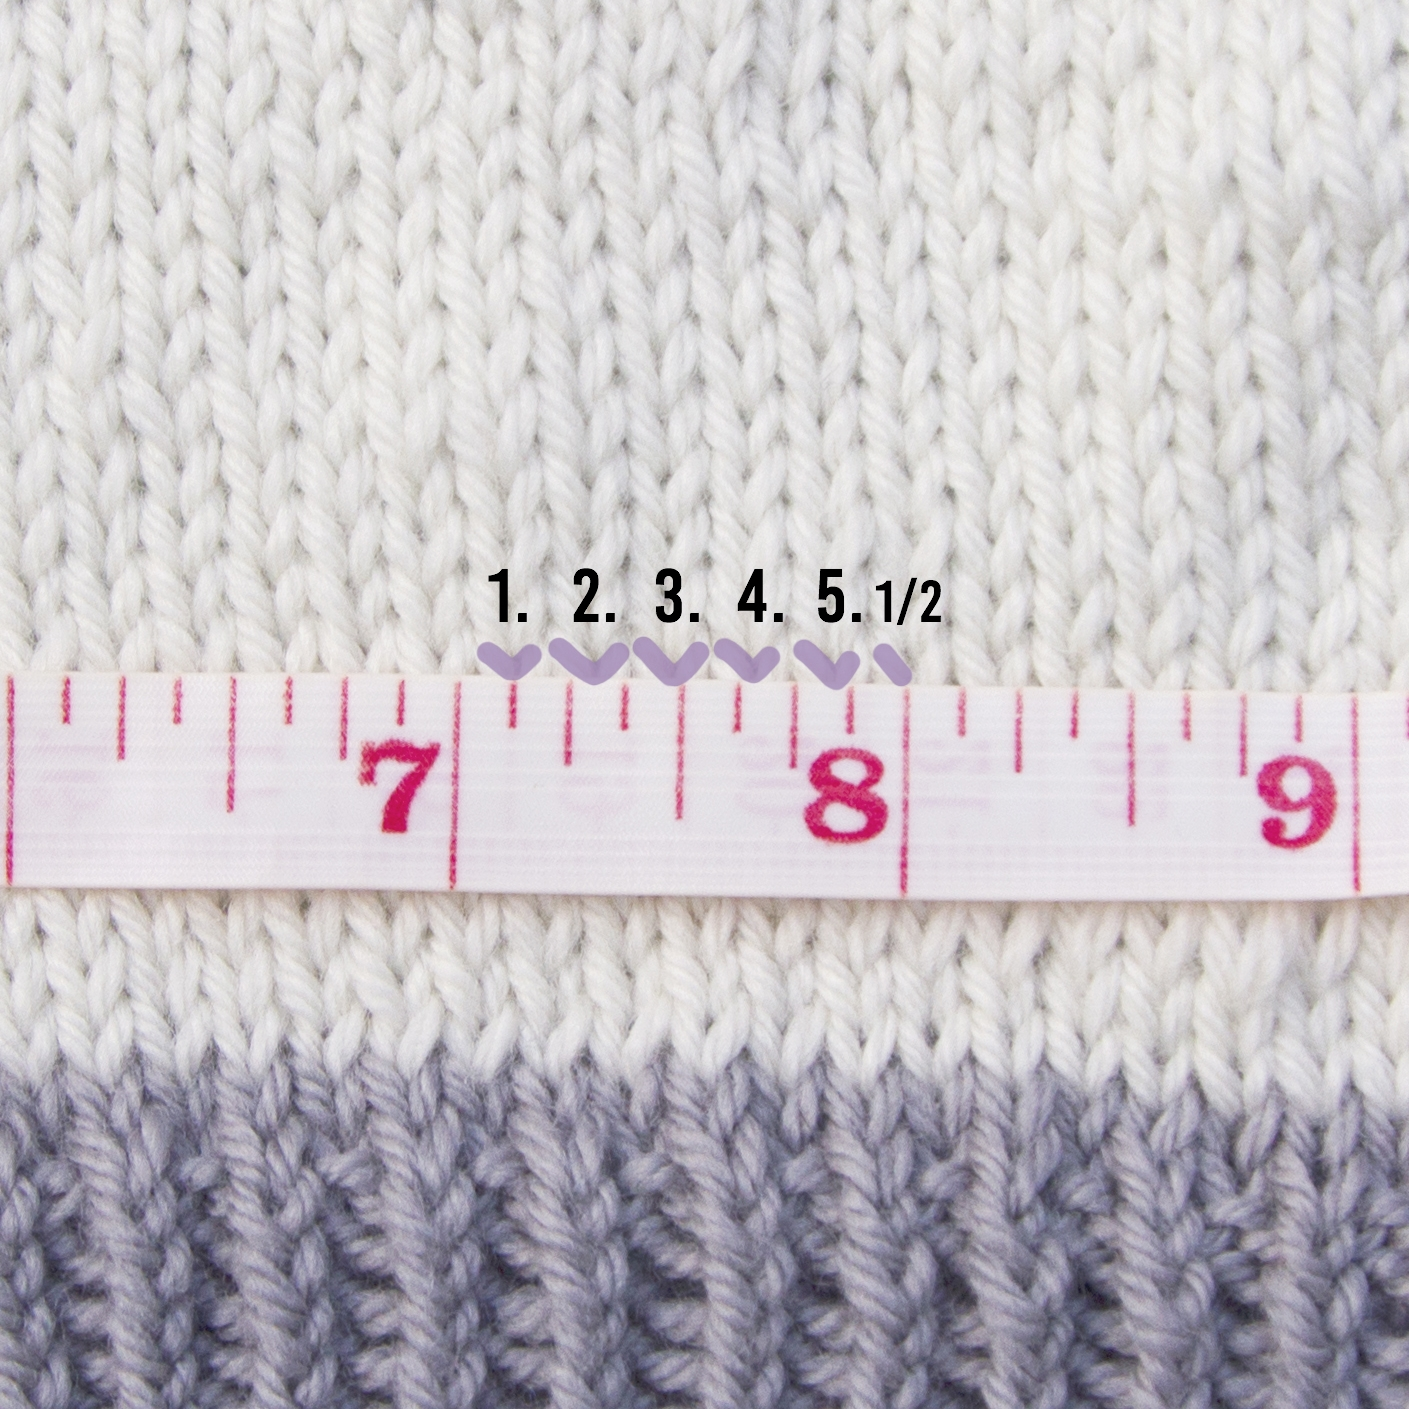 how to count stitches